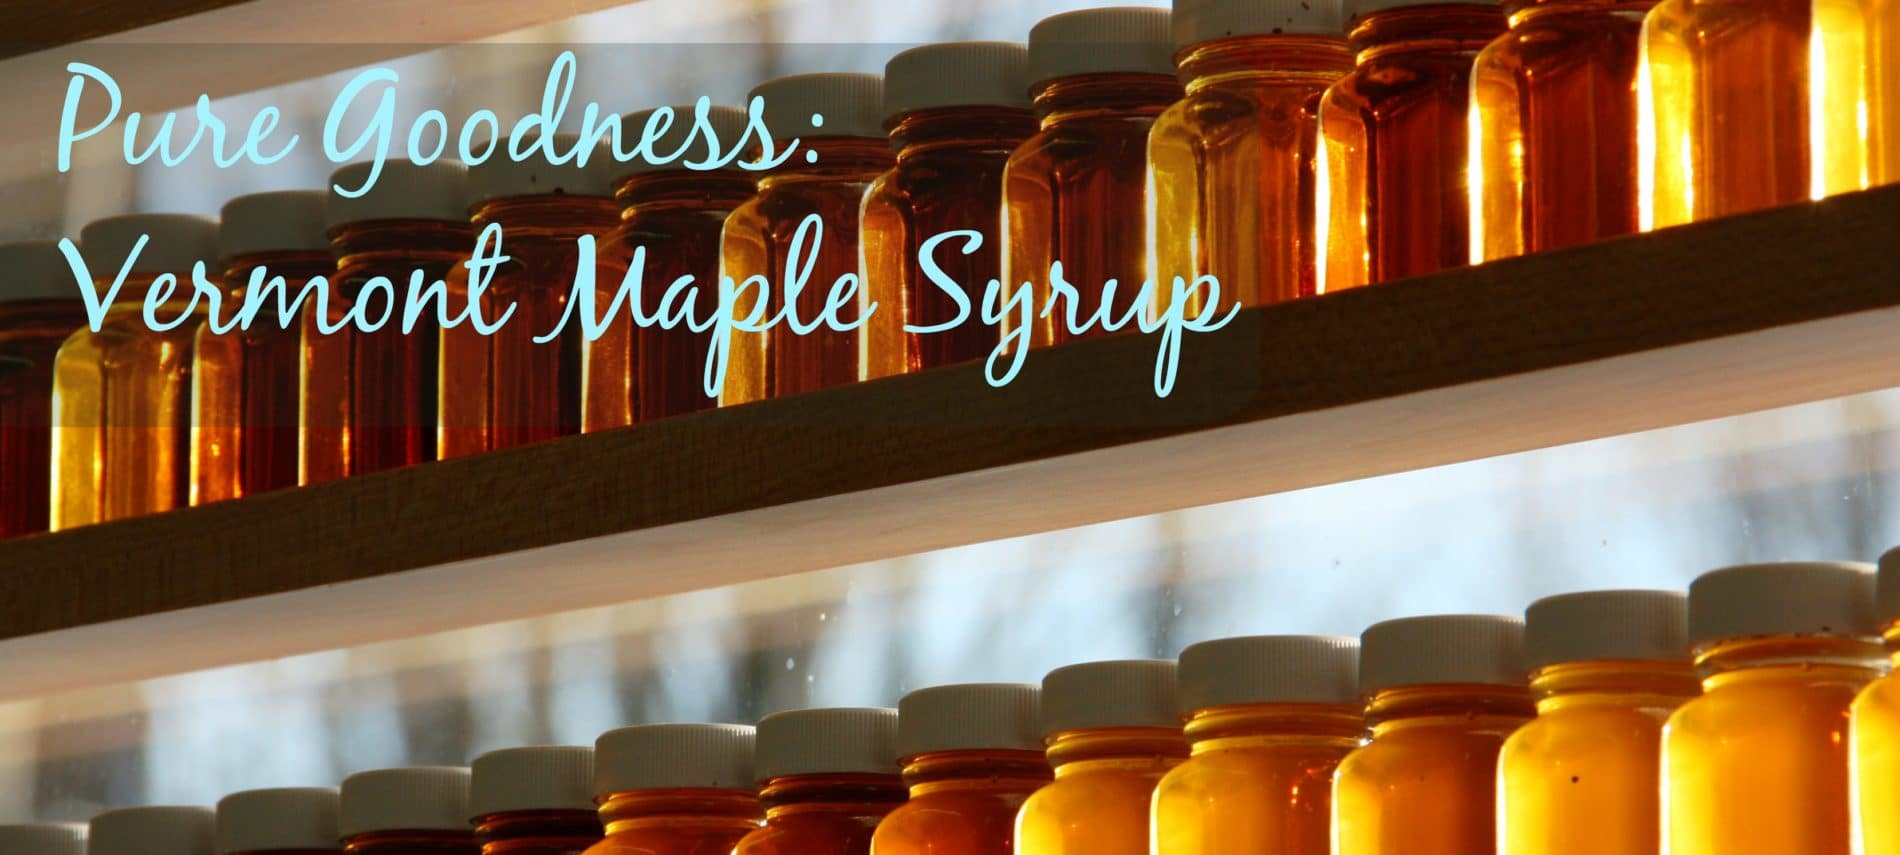 Dessert recipes featuring Vermont Maple syrup